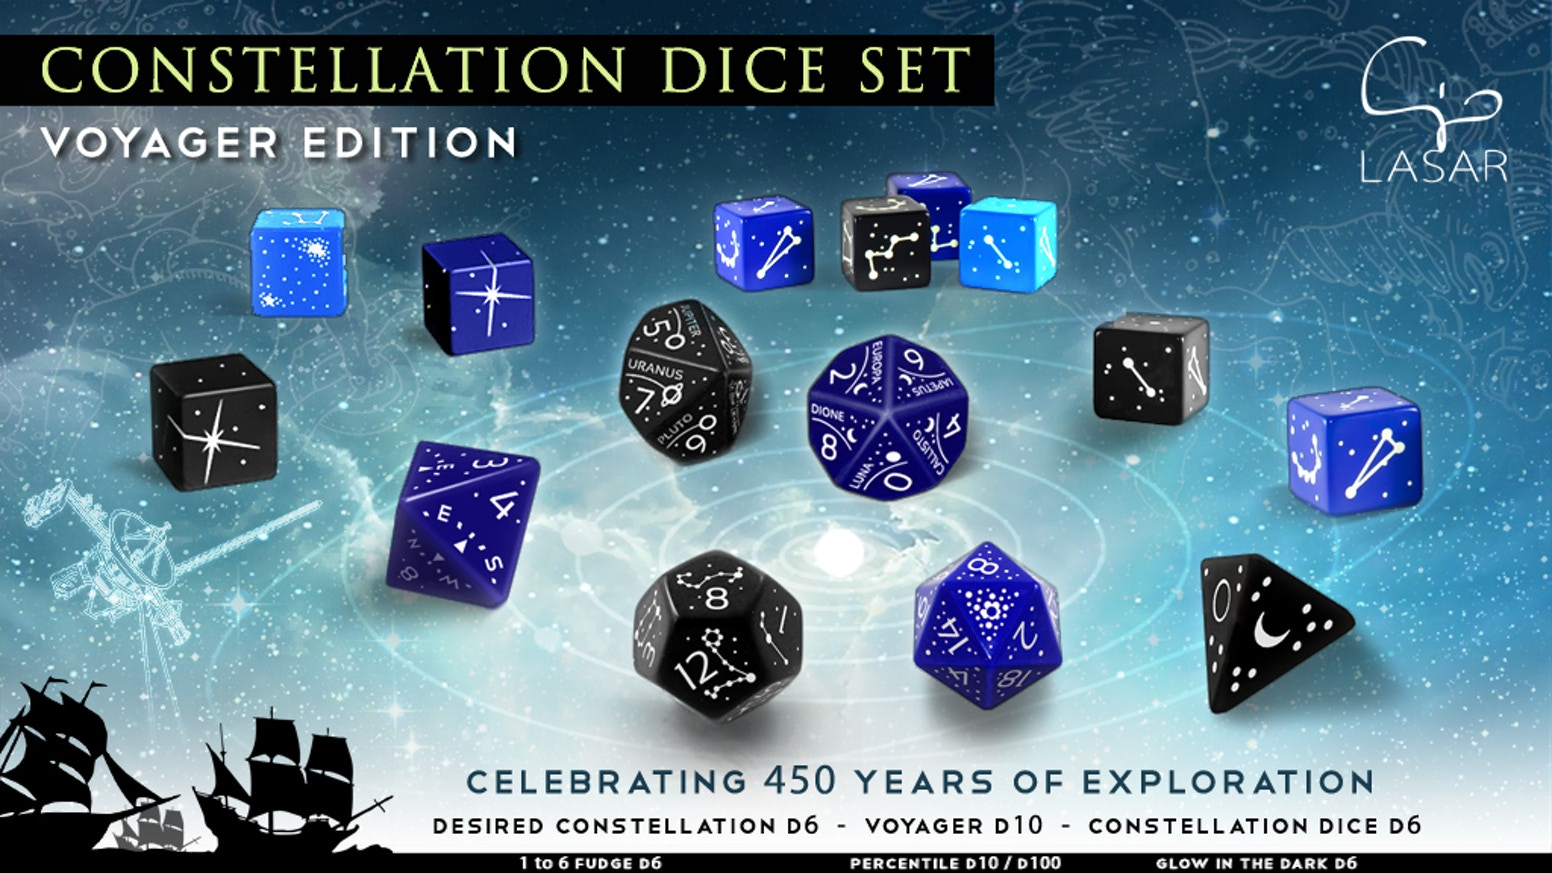 Nine Limited Edition Collectors' Dice celebrating the Exploration of the Southern Emisphere, the Solar System, and Fantasy Universes!